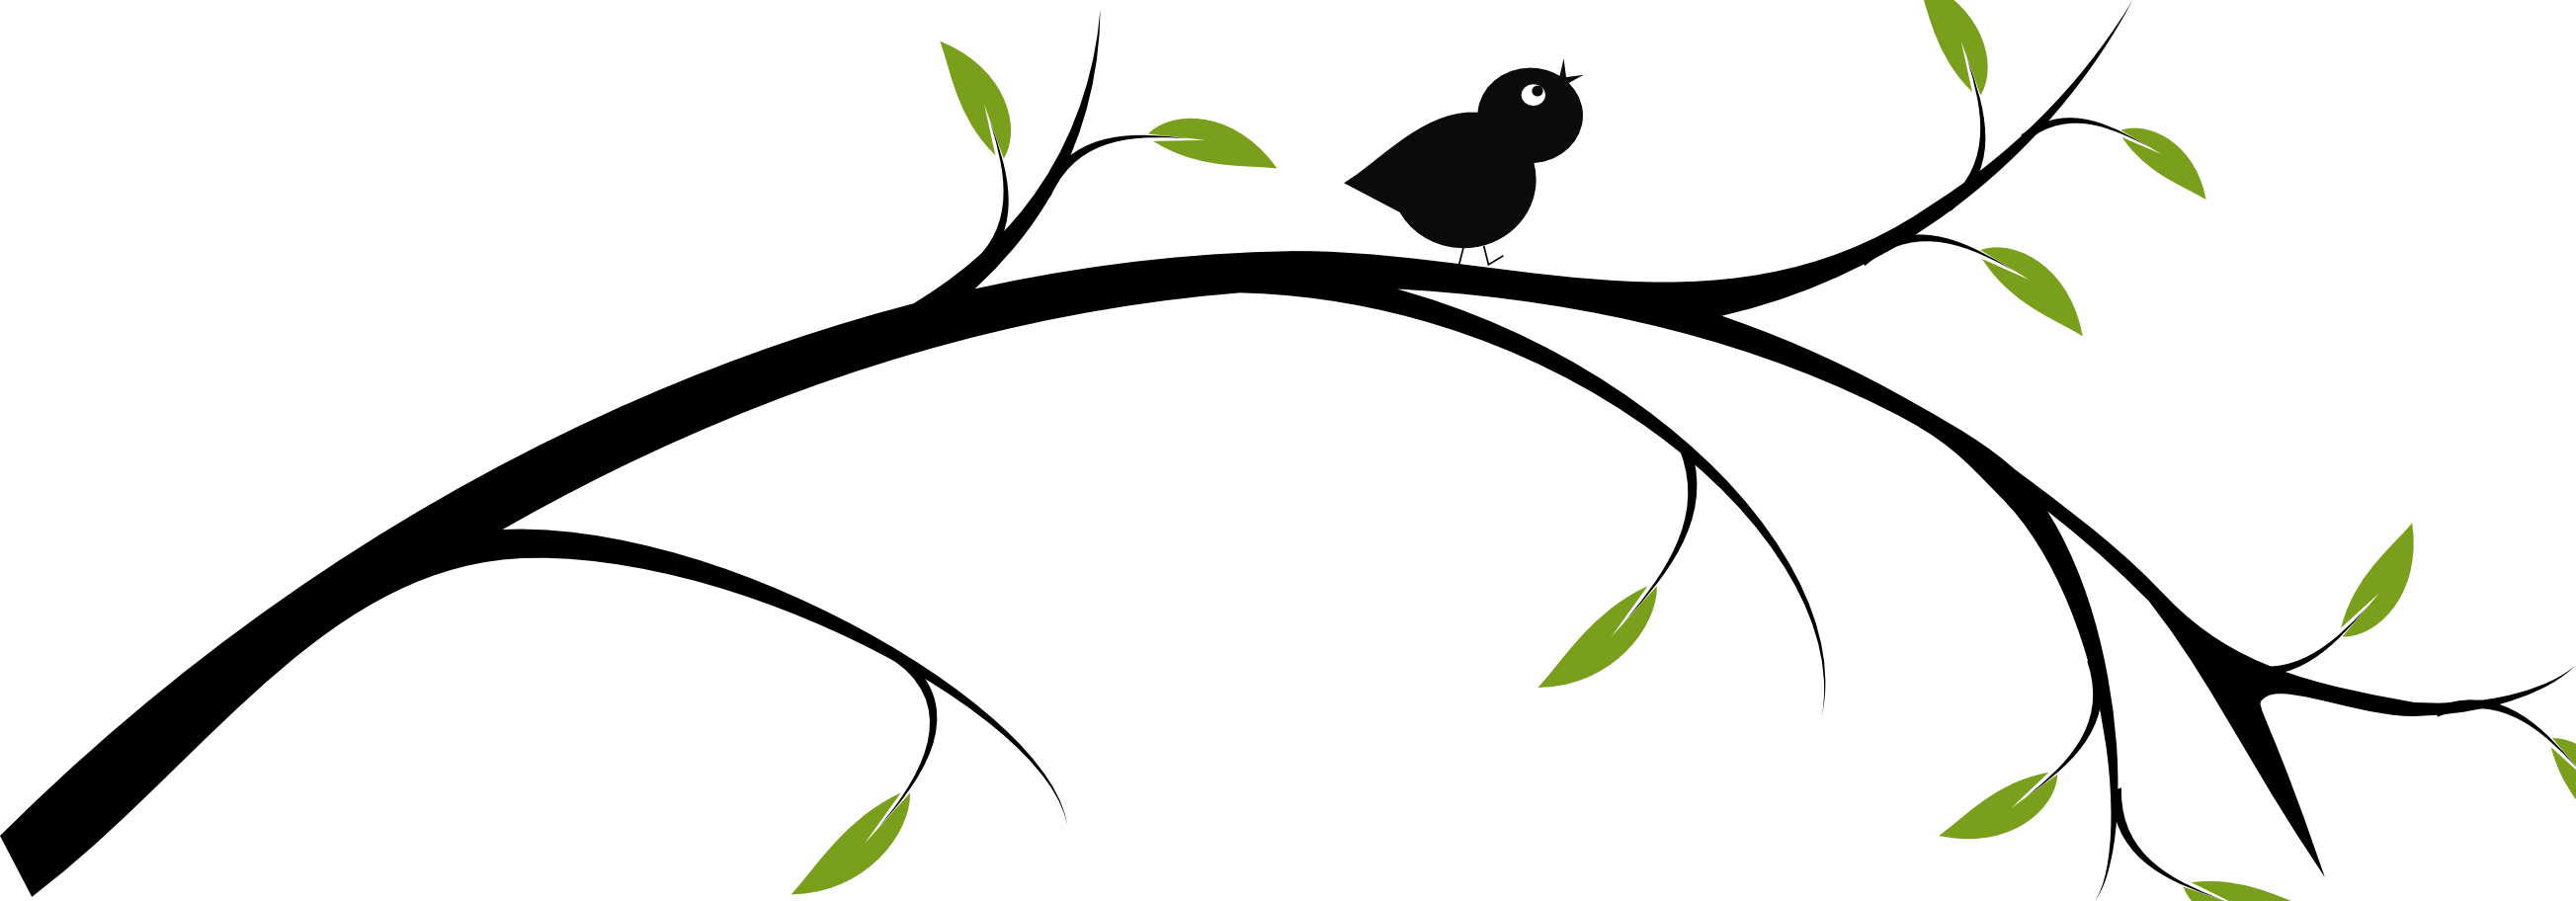 Black and white tree branch clipart clip art black and white stock birds on a branch clip art | Simple Inkscape Tutorial… How to Draw a ... clip art black and white stock